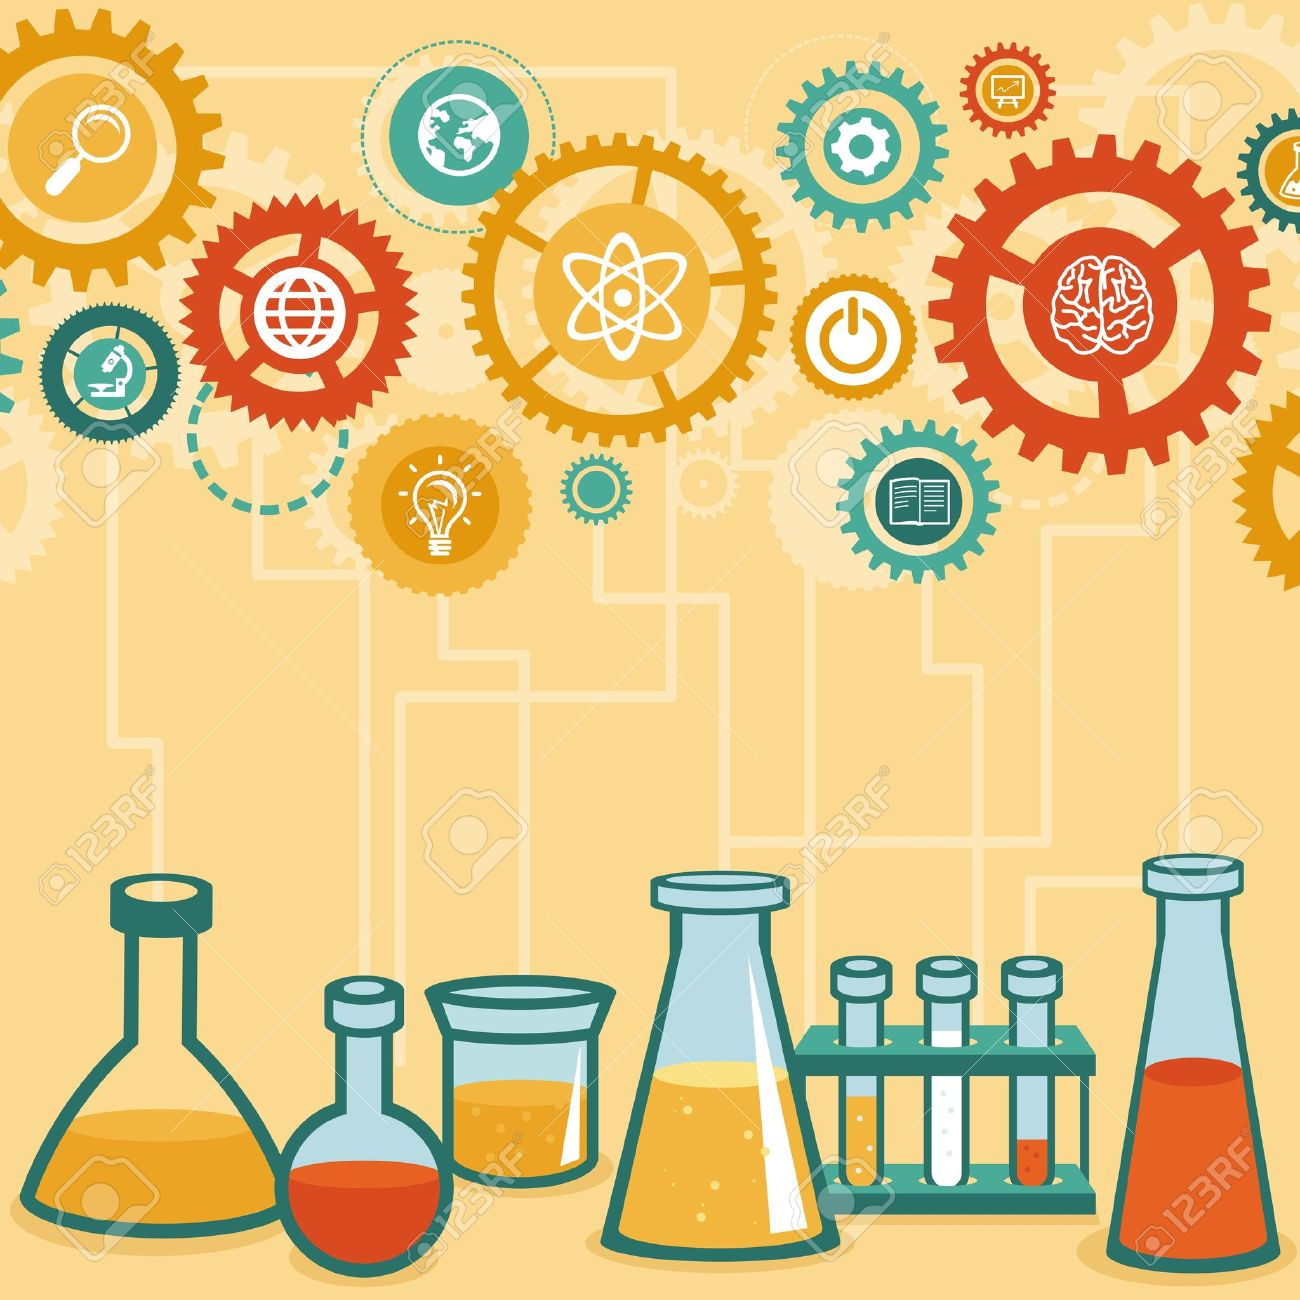 Chemistry Science Clipart Wallpapers chemistry Vector concept